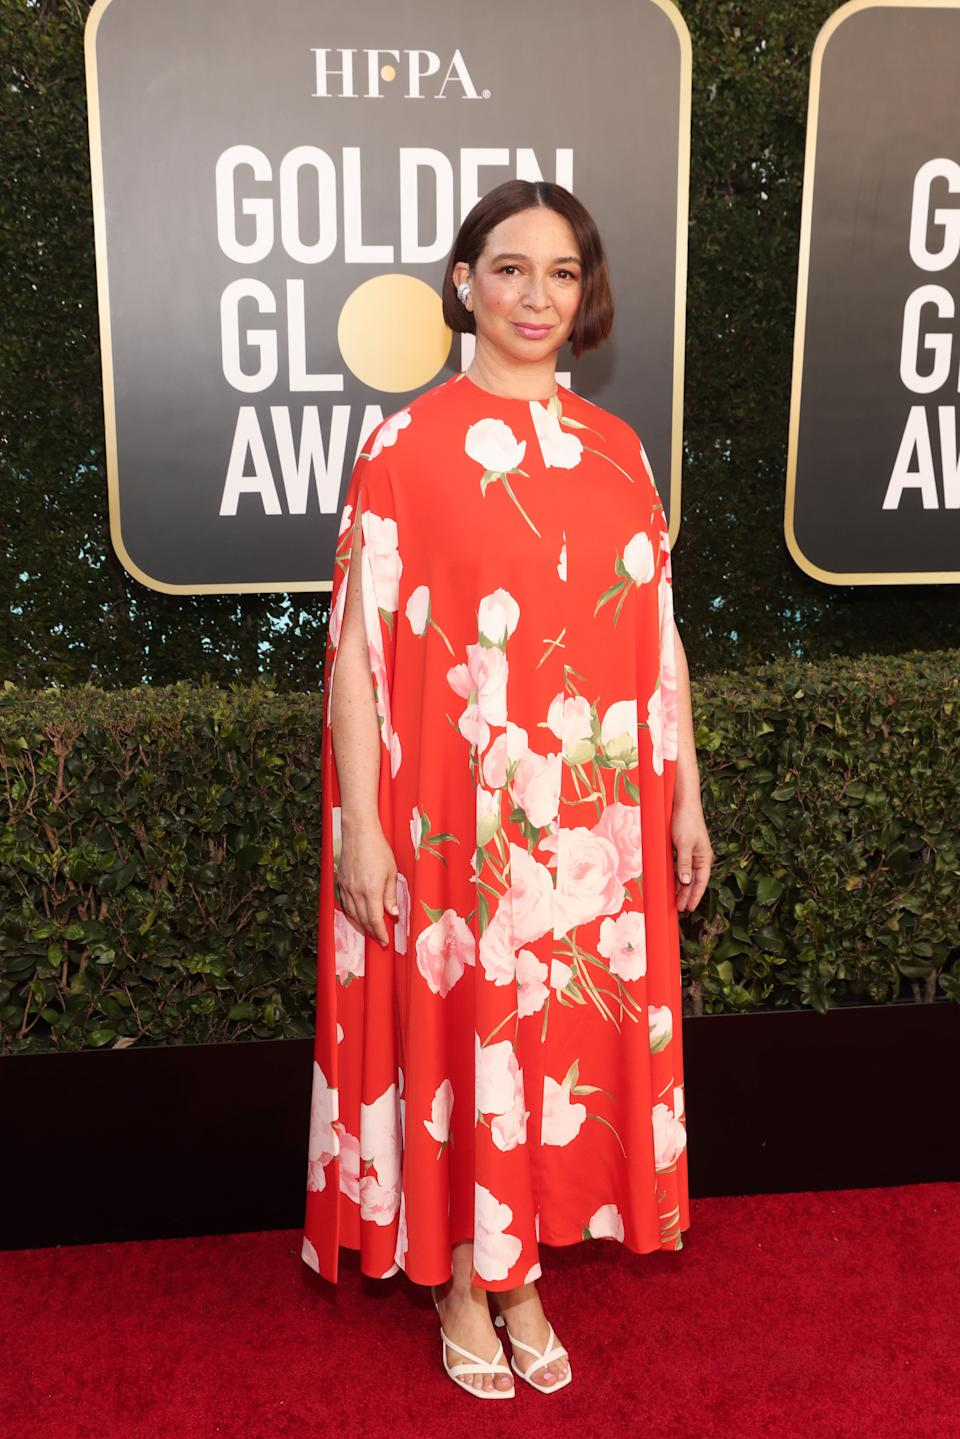 Maya Rudolph attends the 78th Annual Golden Globe Awards held at The Beverly Hilton and broadcast on February 28, 2021 in Beverly Hills, California.